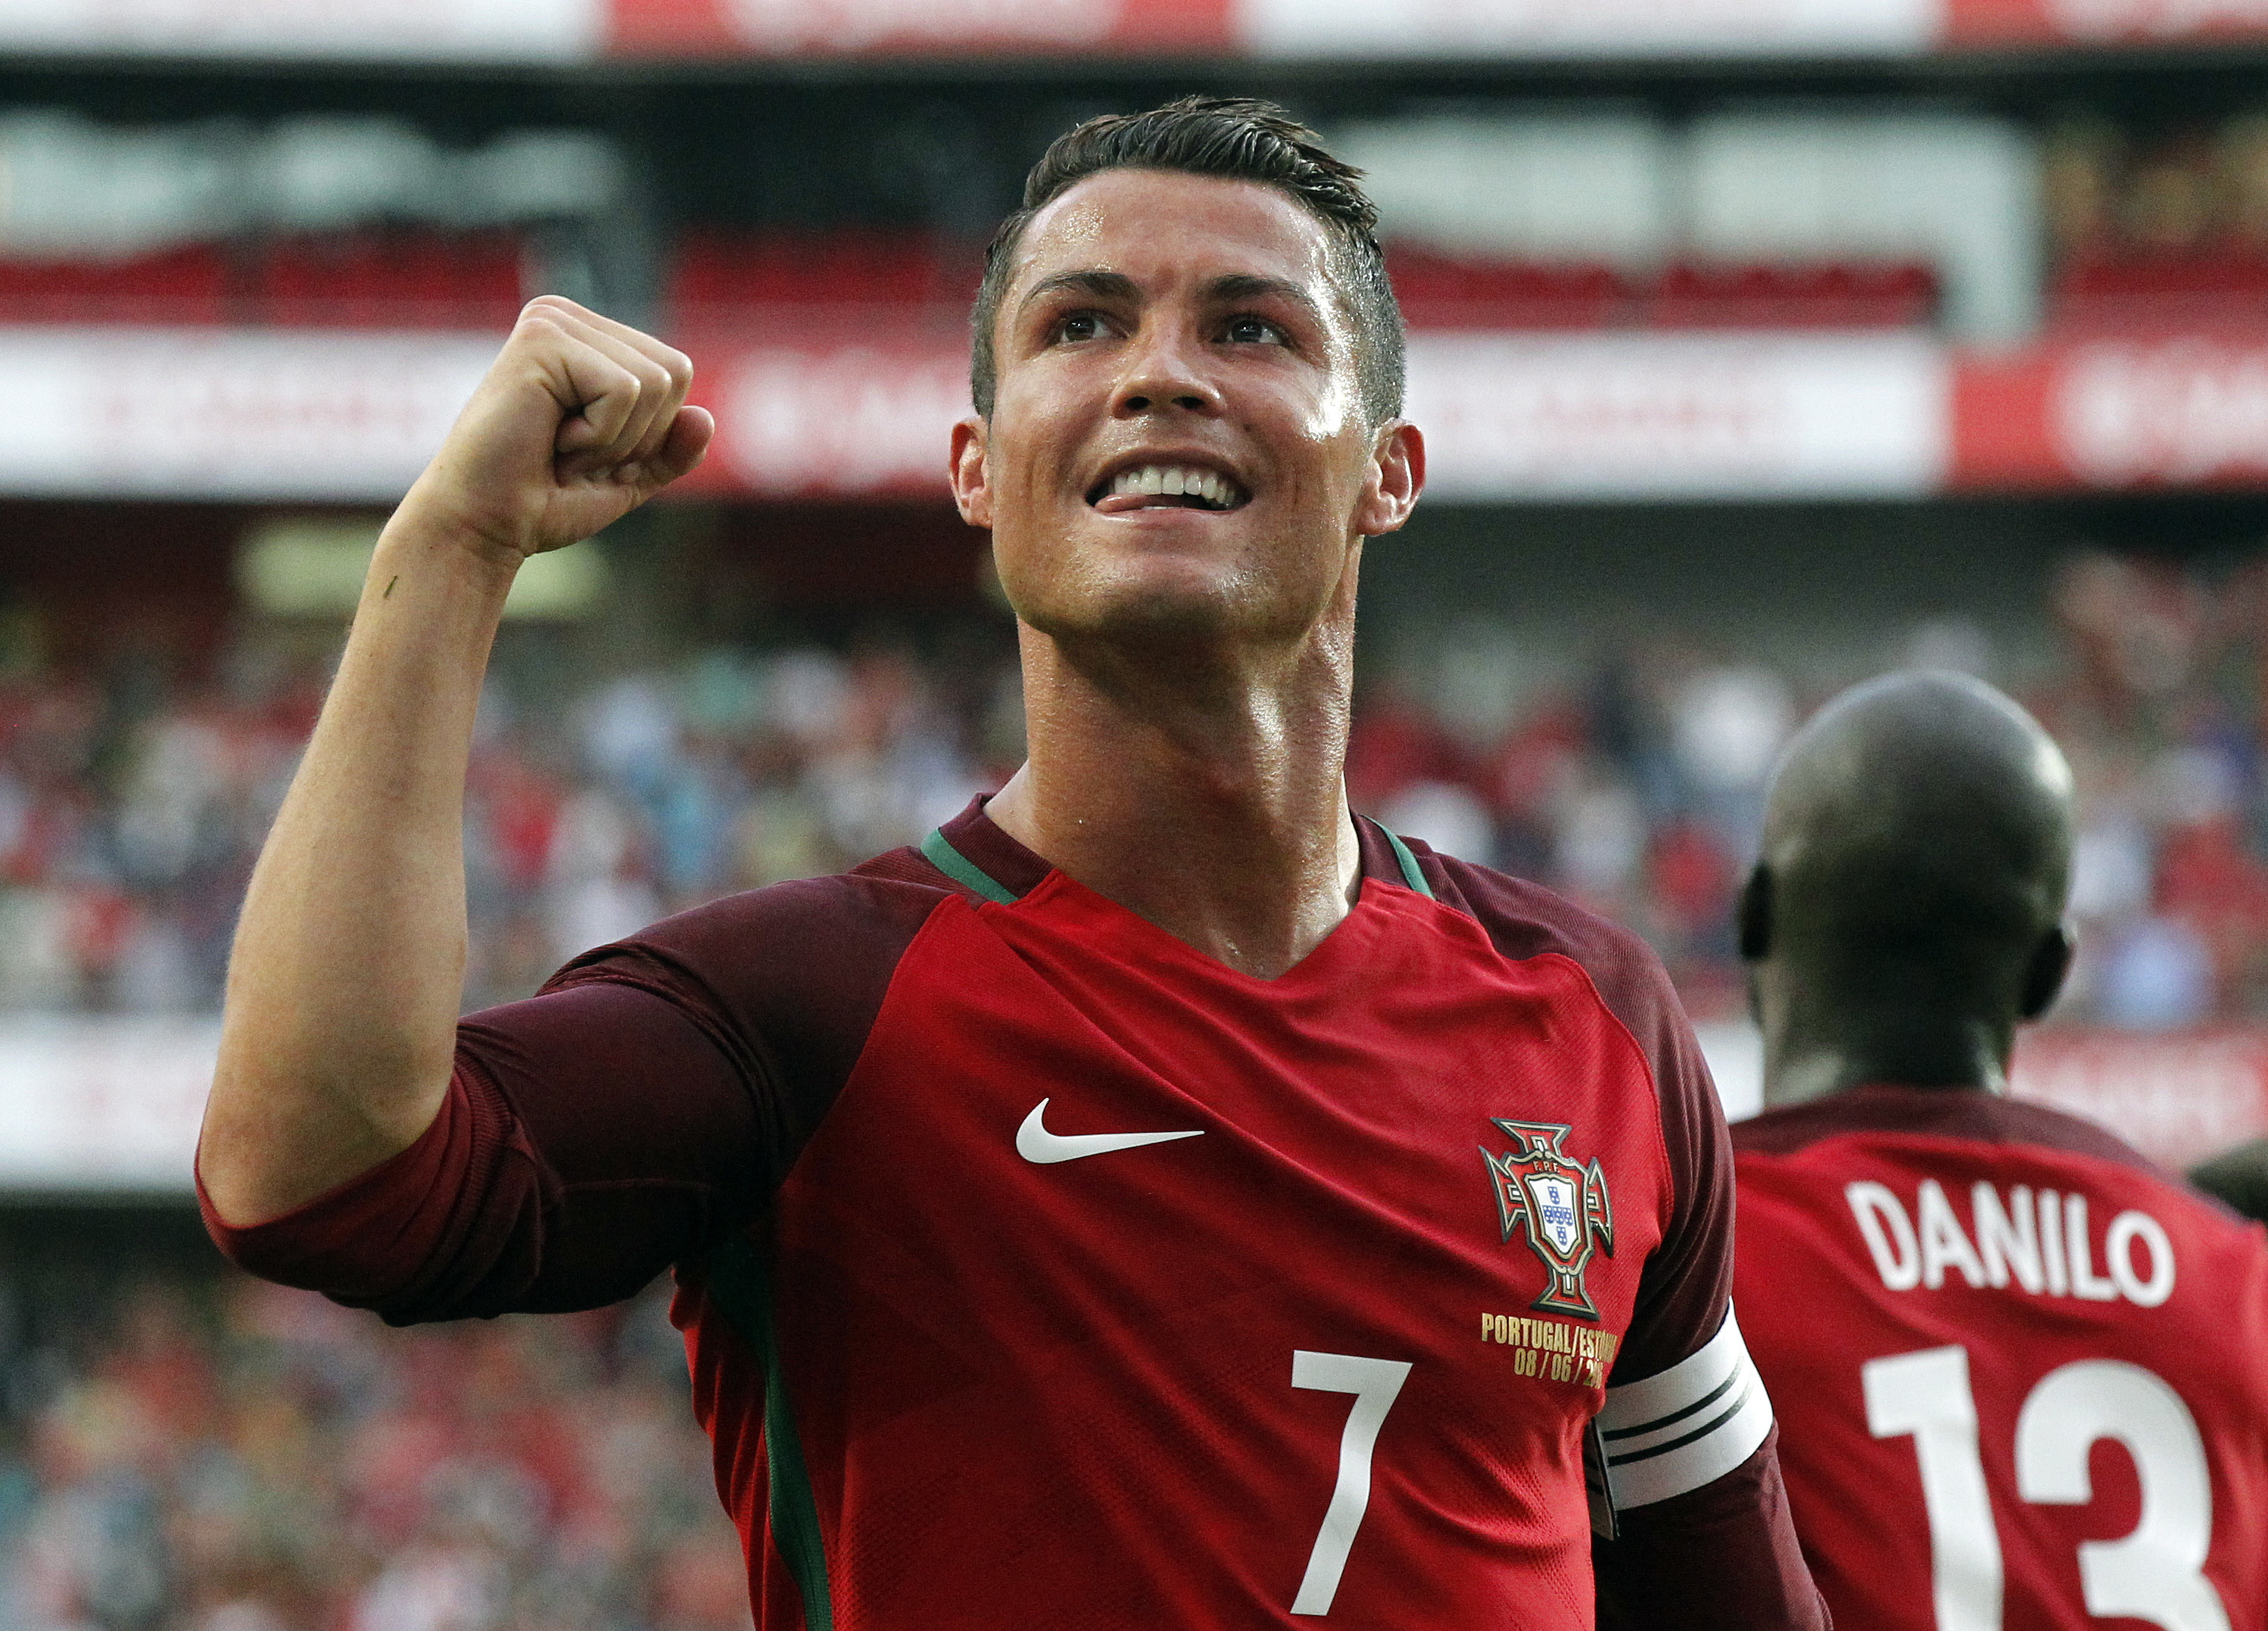 Portugal's Cristiano Ronaldo celebrates after scoring against Estonia during their friendly soccer match at Benfica stadium in Lisbon, Wednesday, June 8 2016. Portugal will play in the Euro2016 in Group stage against Austria, Hungary and Iceland in Group F. (AP Photo/Steven Governo)